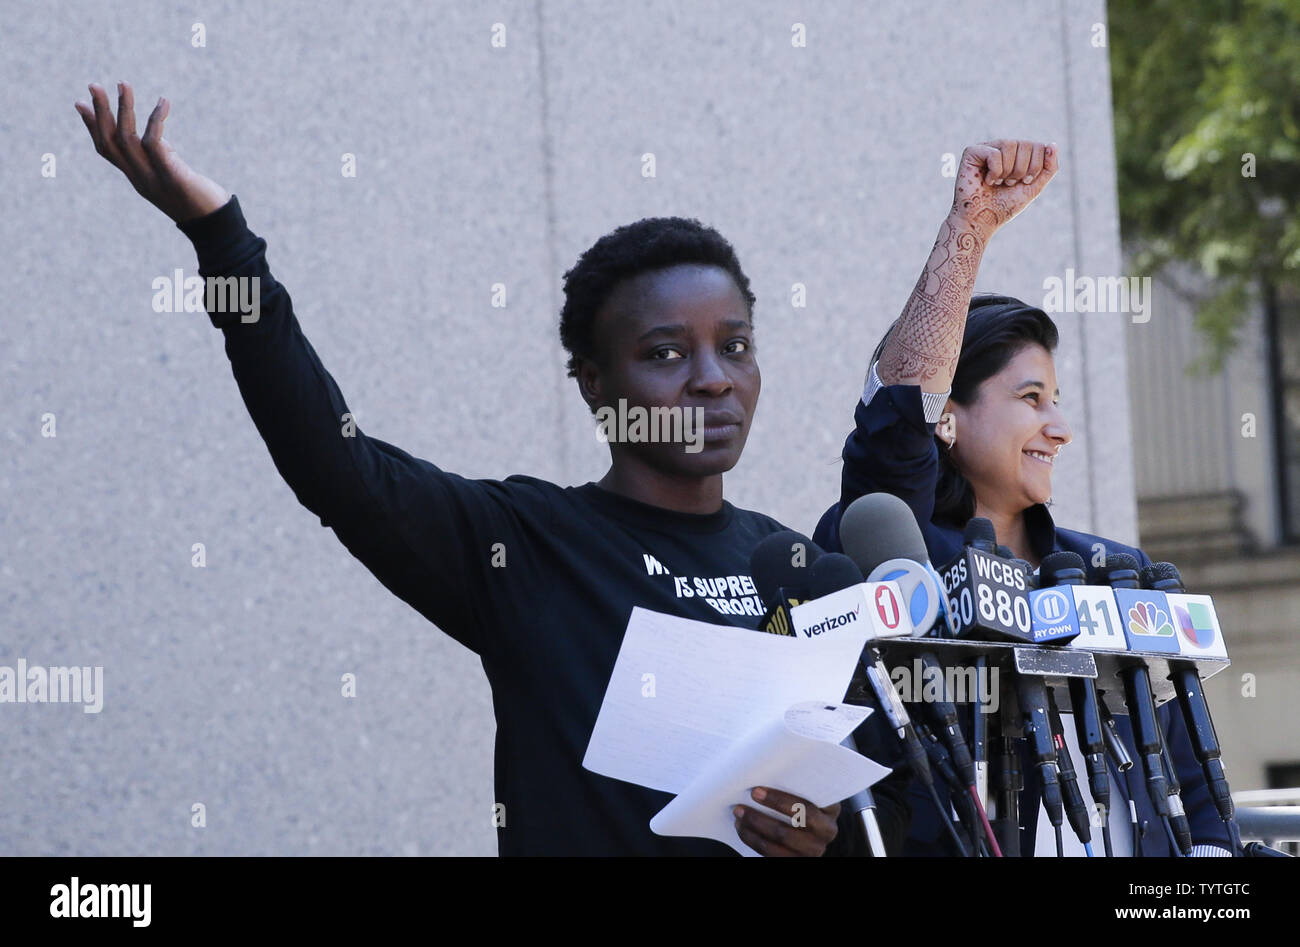 Statue Of Liberty climber and Rise and Resist protester Therese Okoumou raises her hand with Attorney Rhiya Trivedi when she speaks after exiting Court in New York City on July 5, 2018 in New York City. The woman who partially climbed up the Statue of Liberty on July 4th Independence Day and prompted authorities to evacuate Liberty Island was released without bail, and if convicted would face up to six months behind bars.    Photo by John Angelillo/UPI Stock Photo